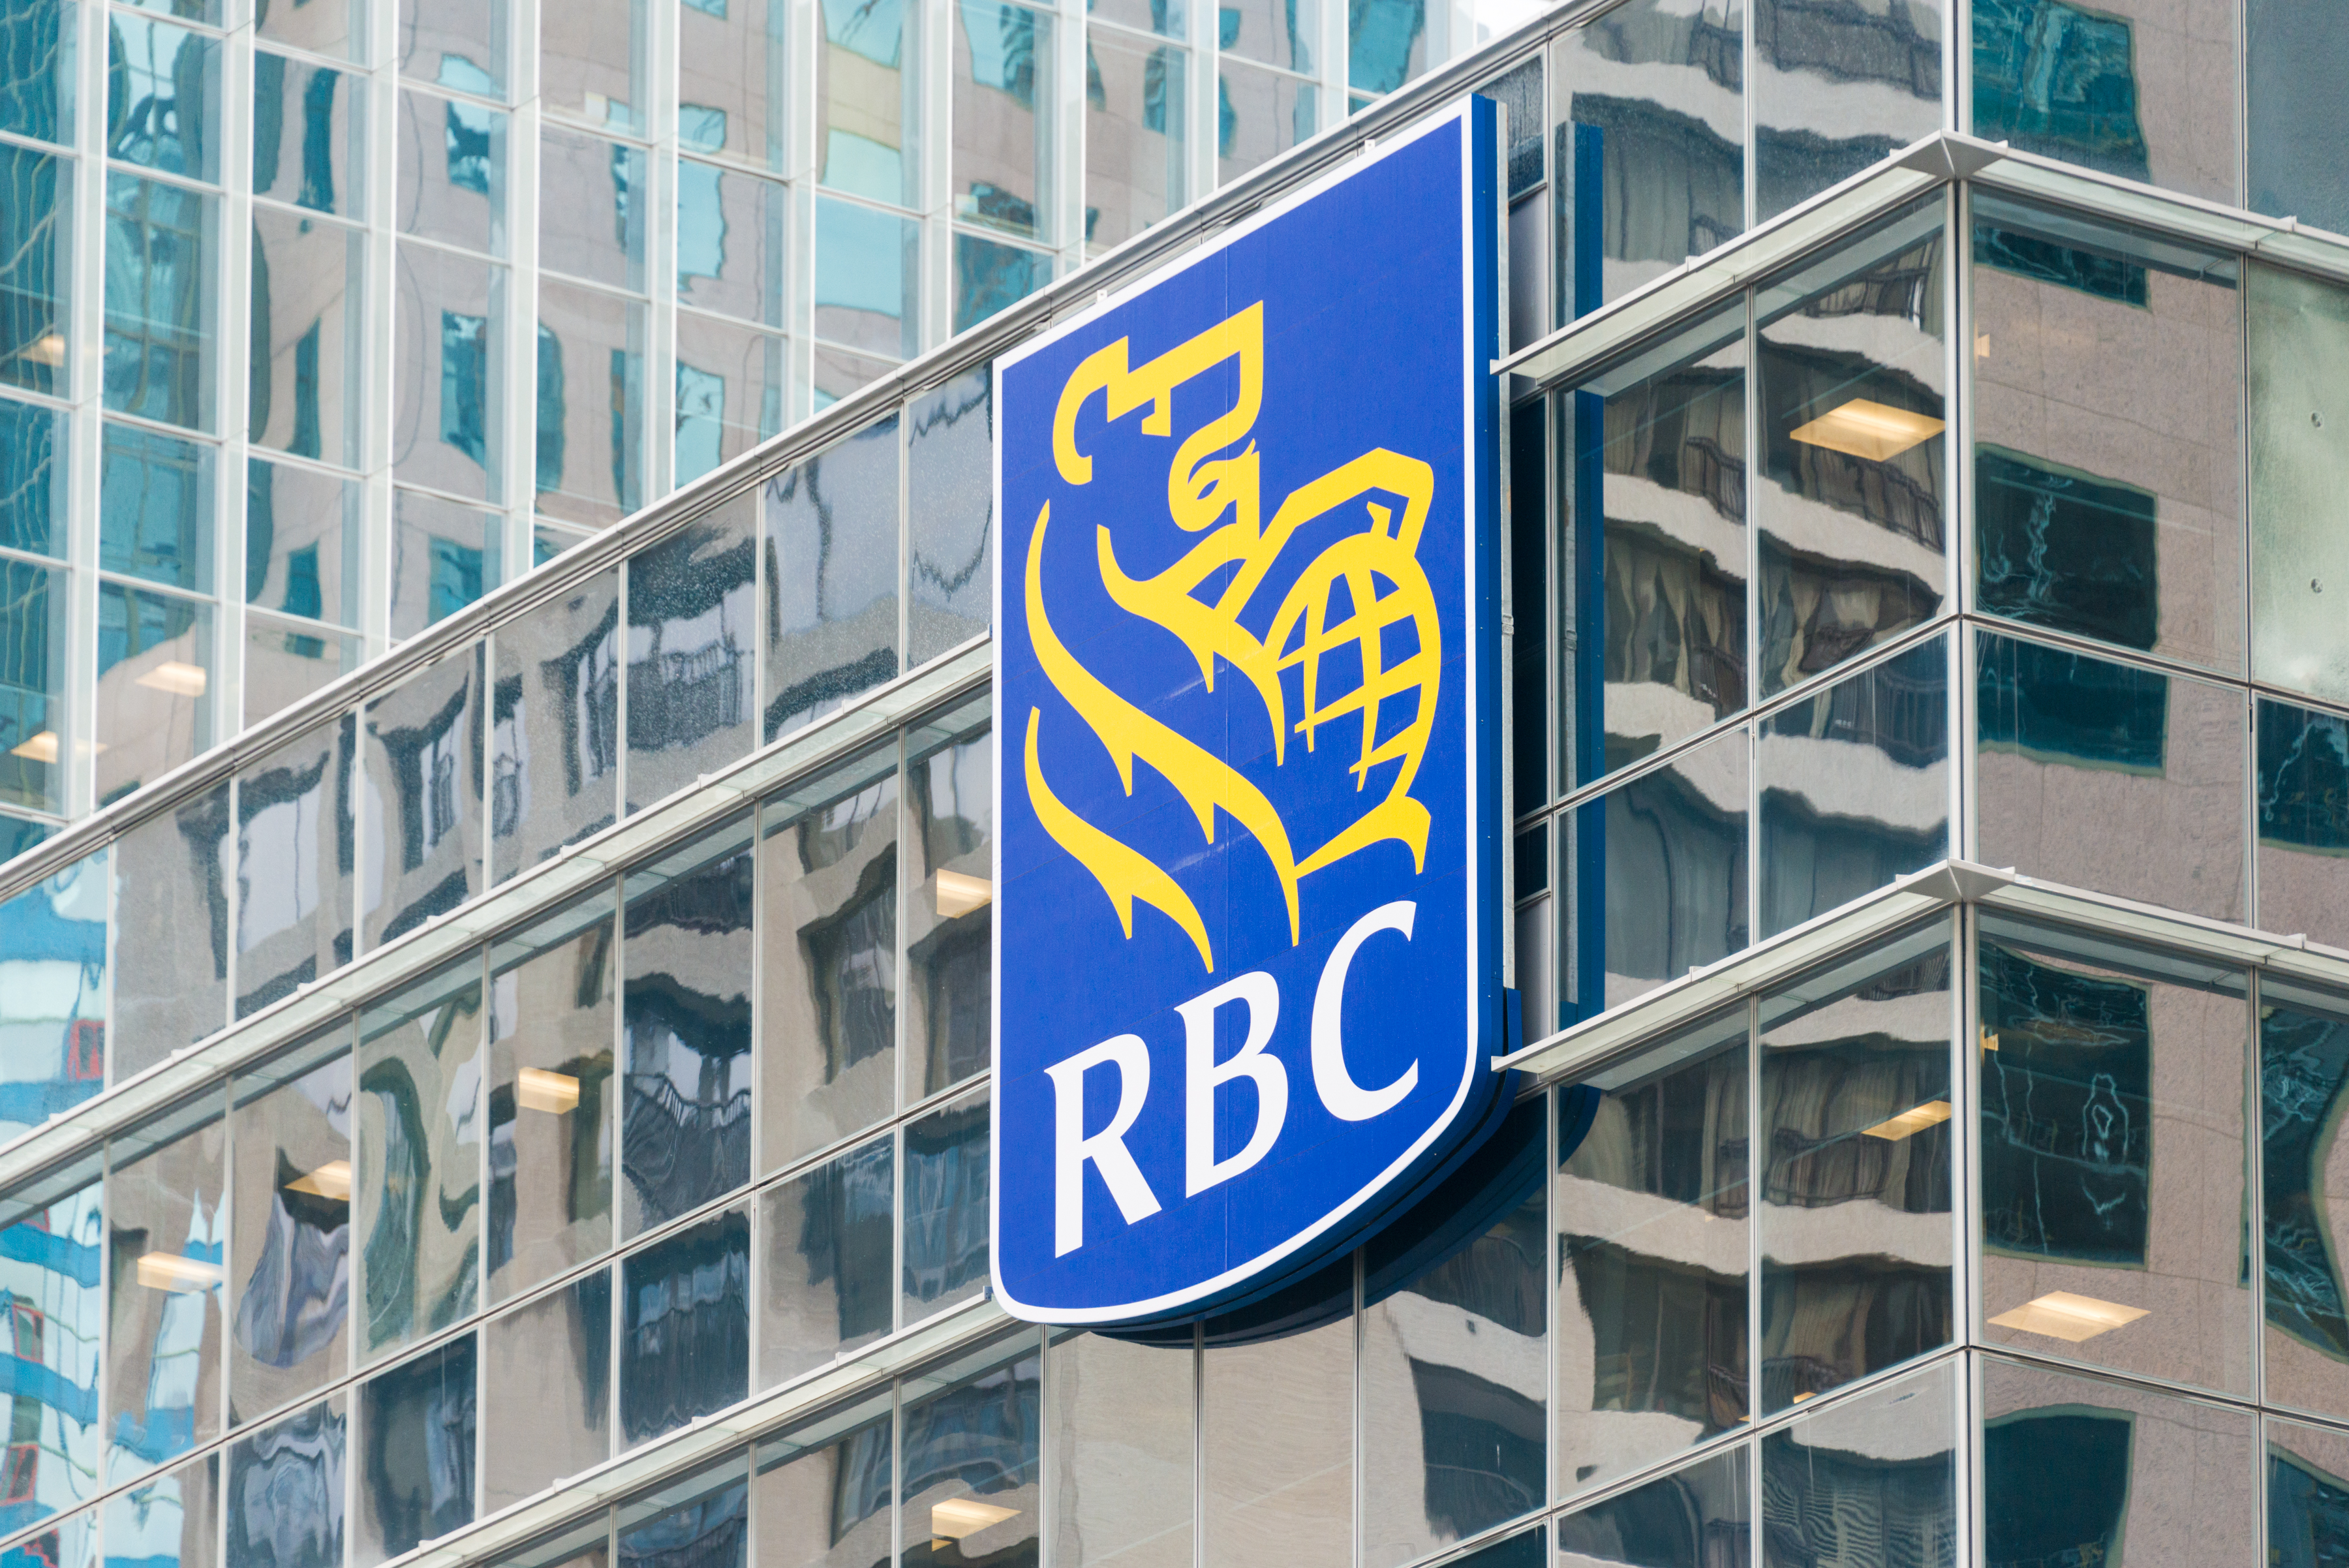 The symbol RBC on the glass facade of a building.